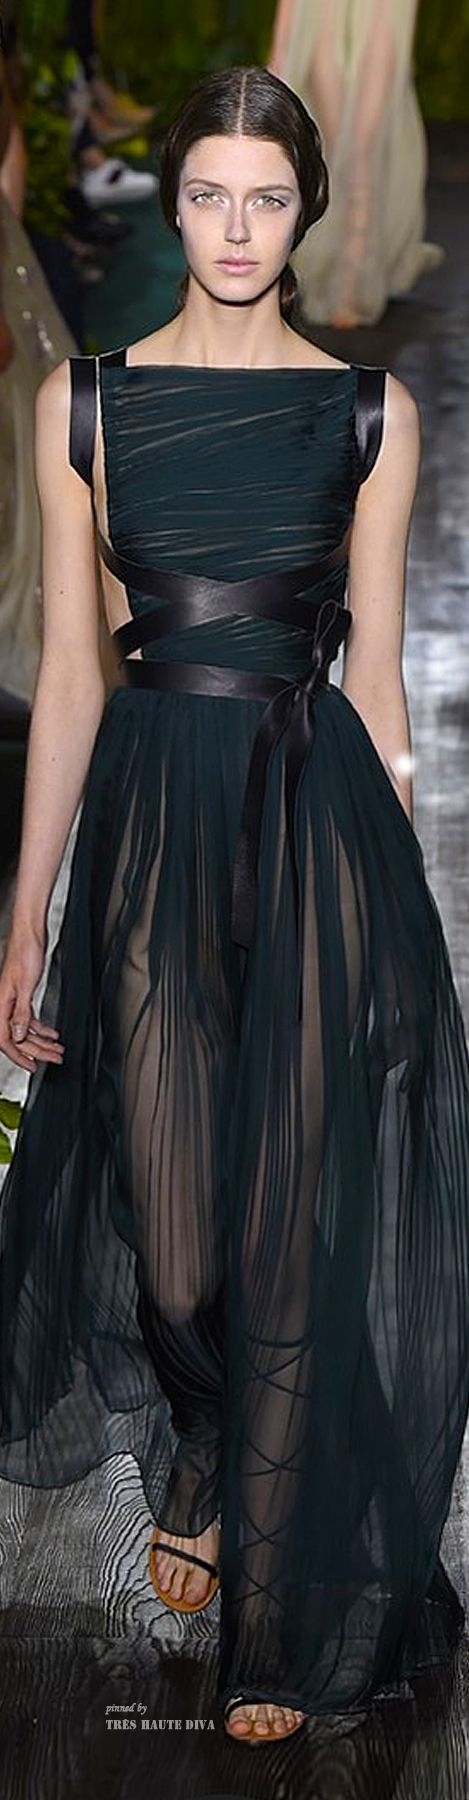 Valentino couture long black sheer dress with ribbons 2014